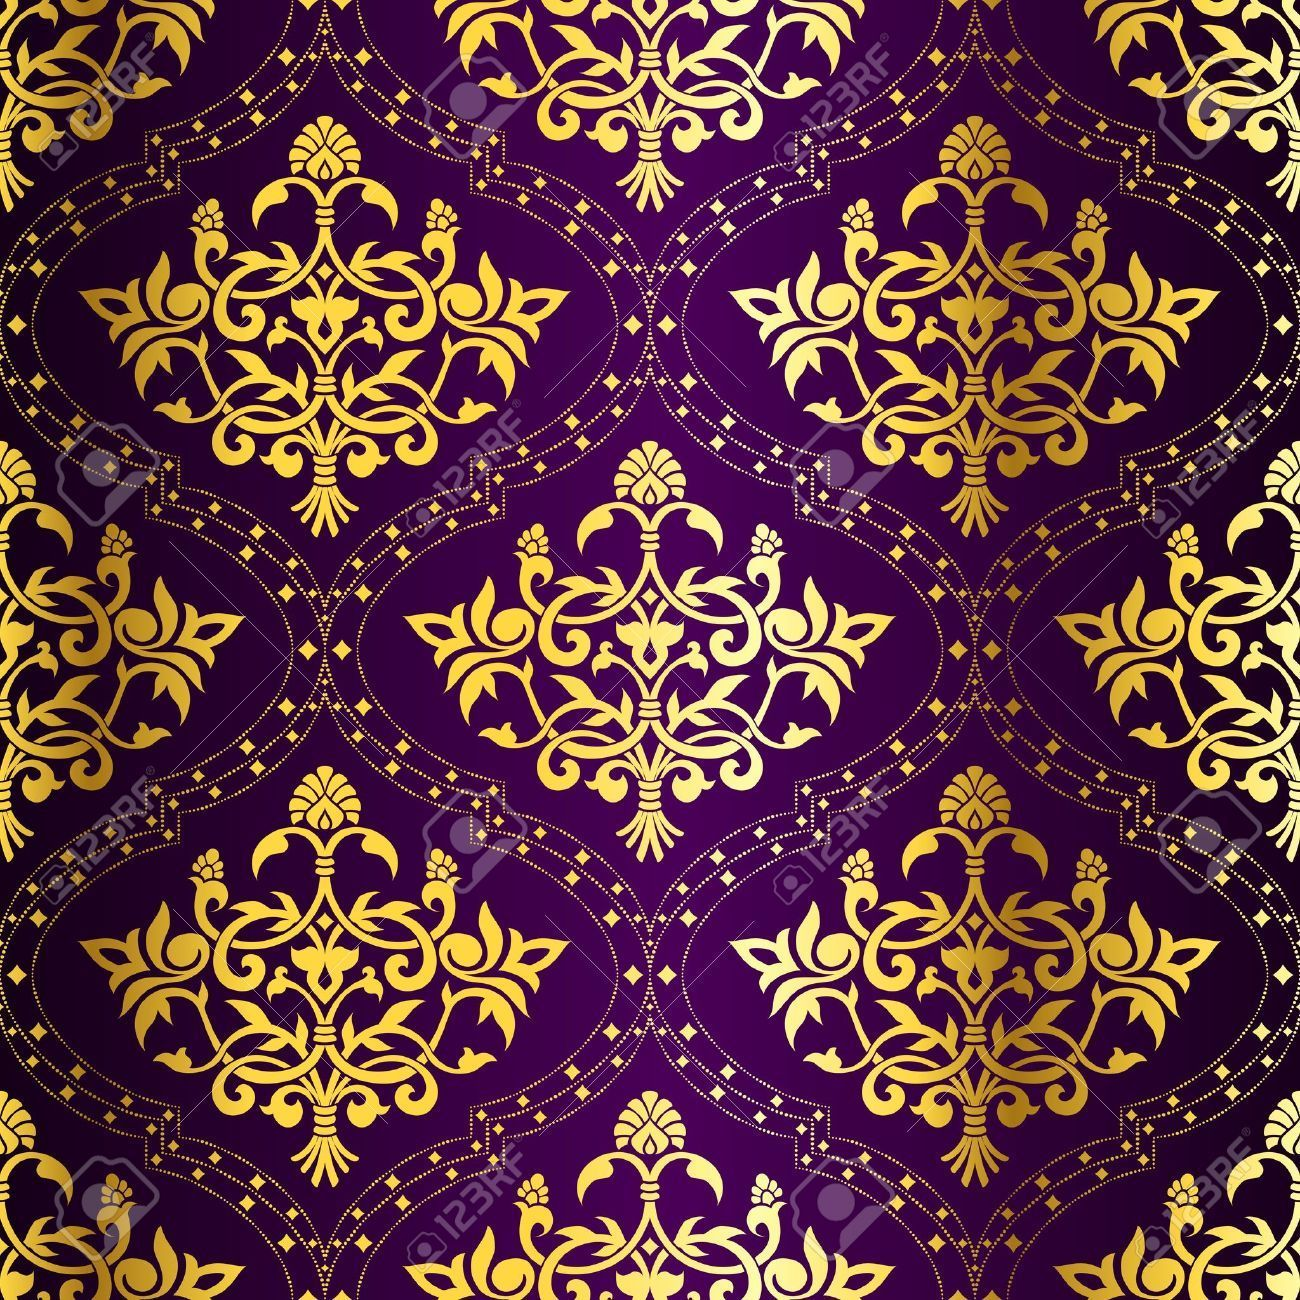 1300x1300 4920146-Gold-on-Purple-seamless-Indian-floral-pattern-The-tiles-can ...